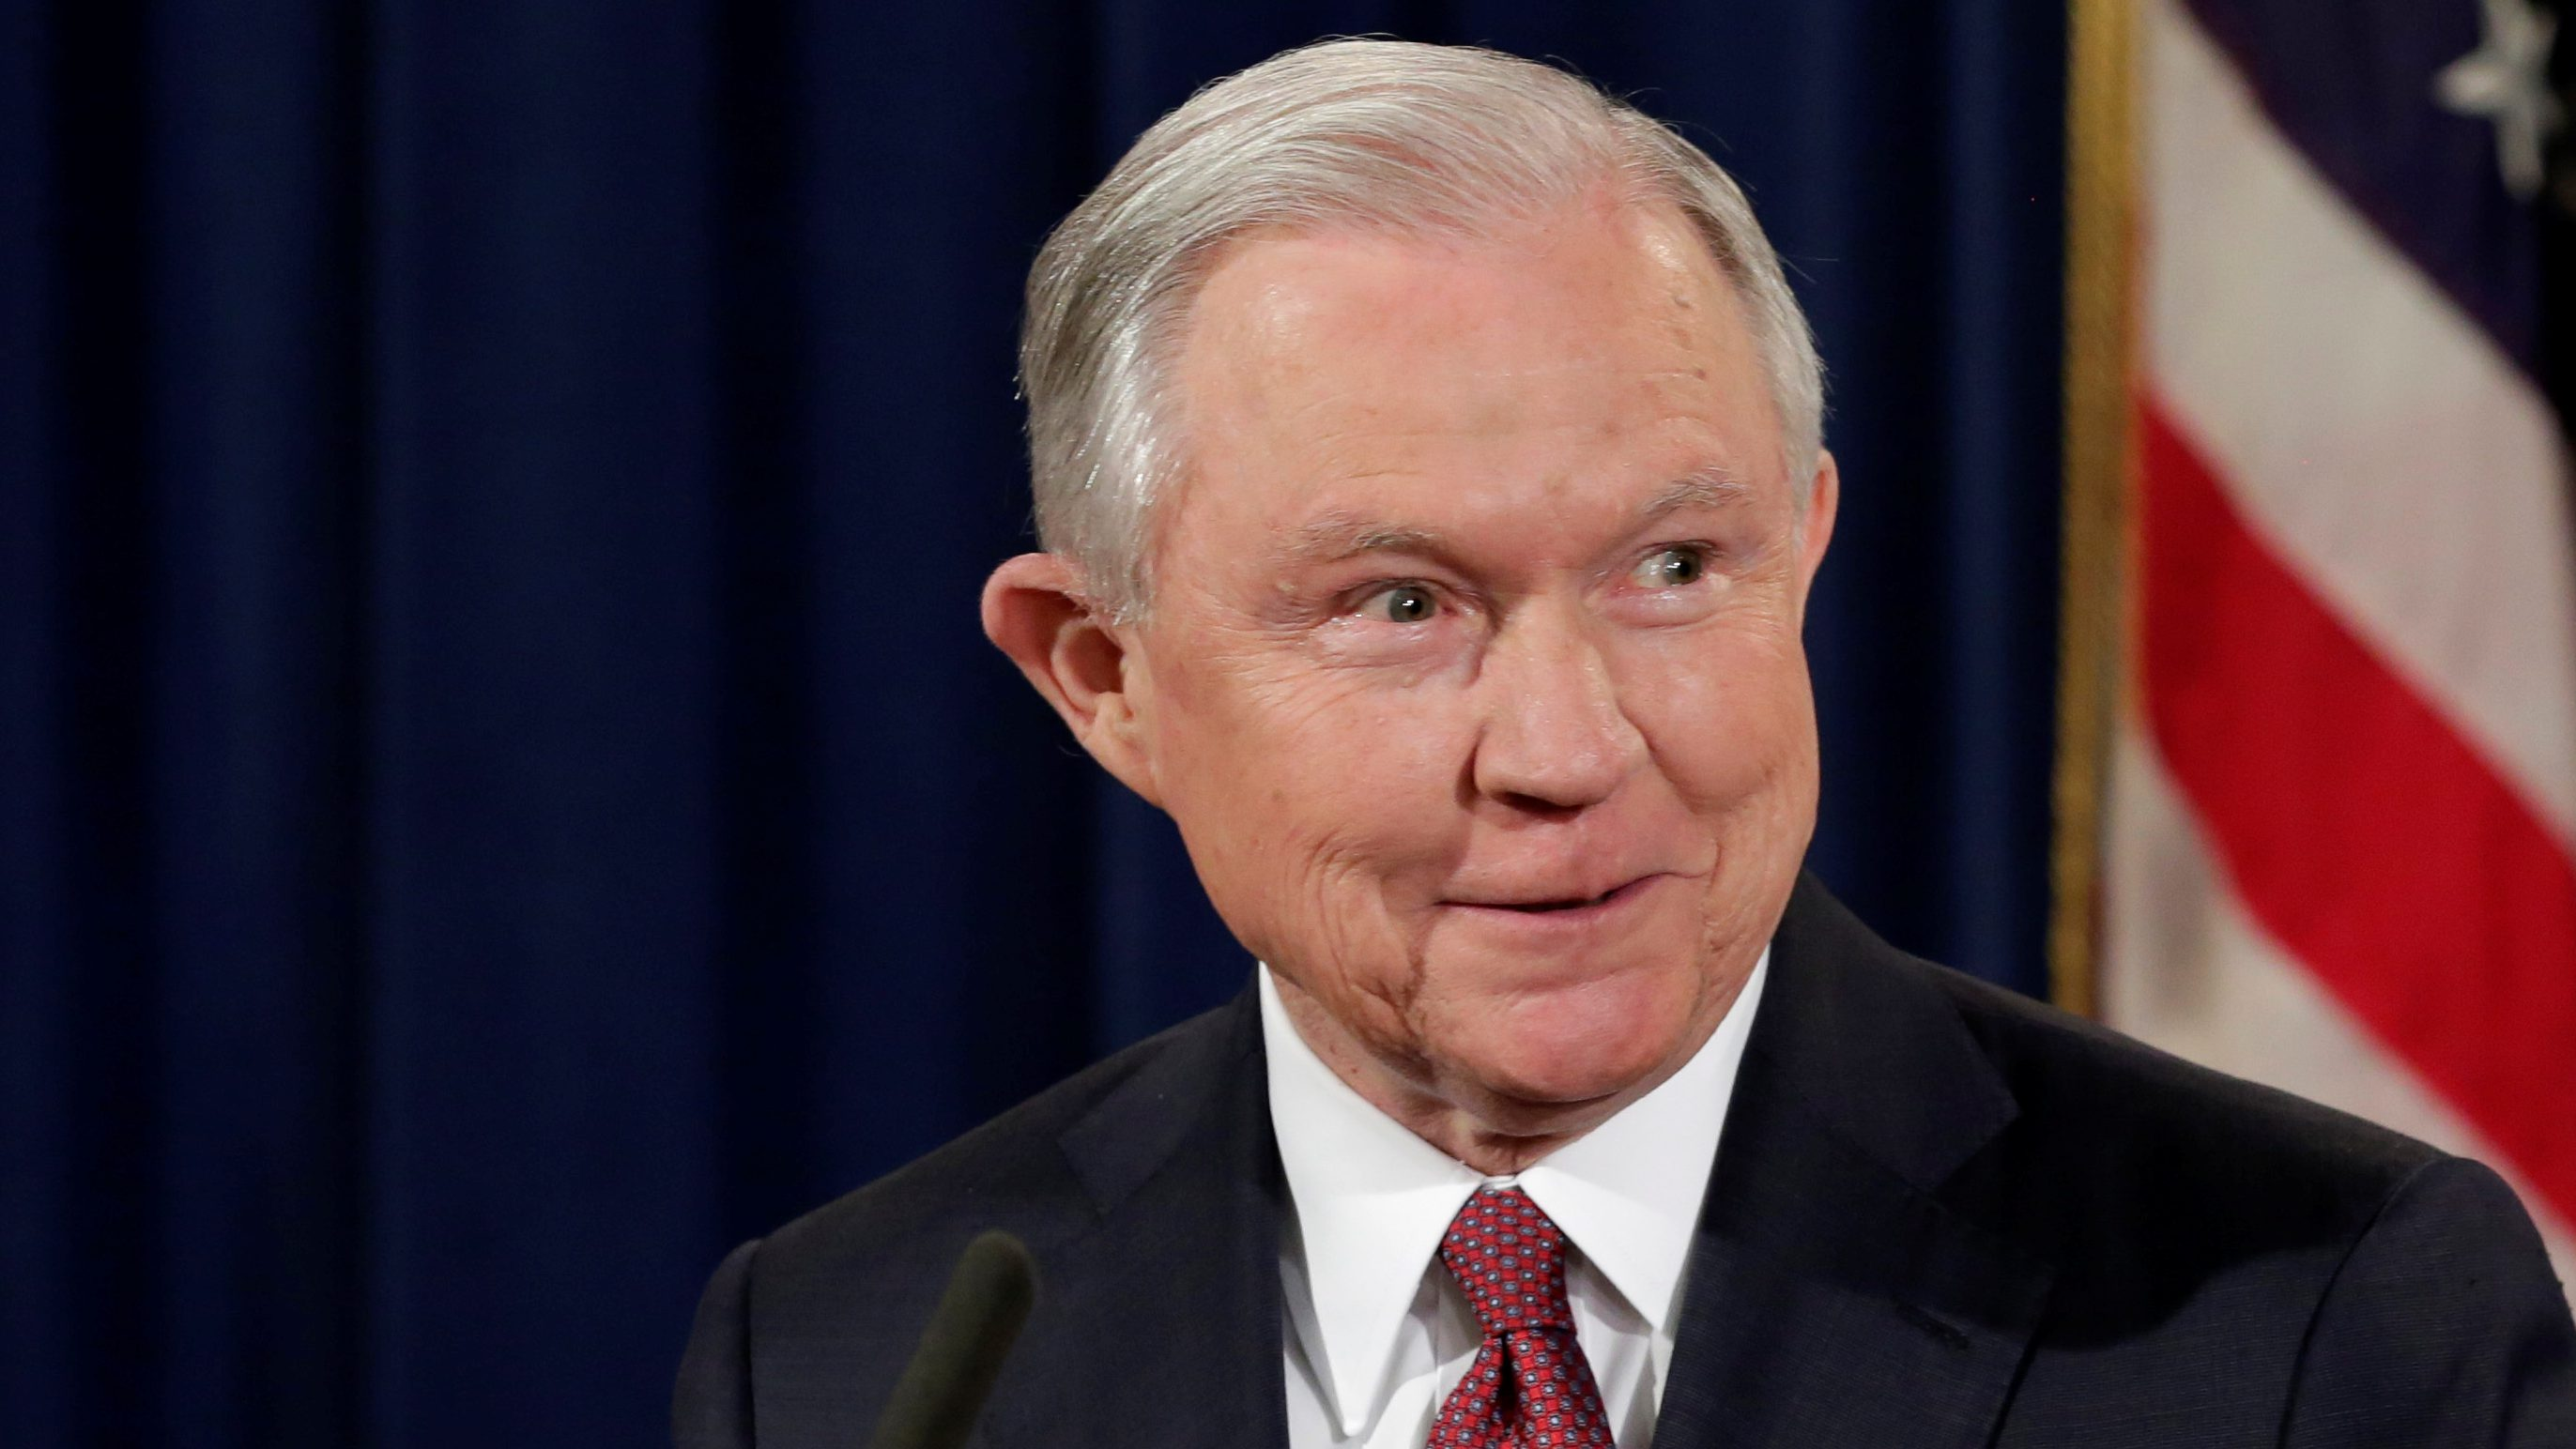 Sessions: No More Asylum for Victims of Gangs and Domestic Violence